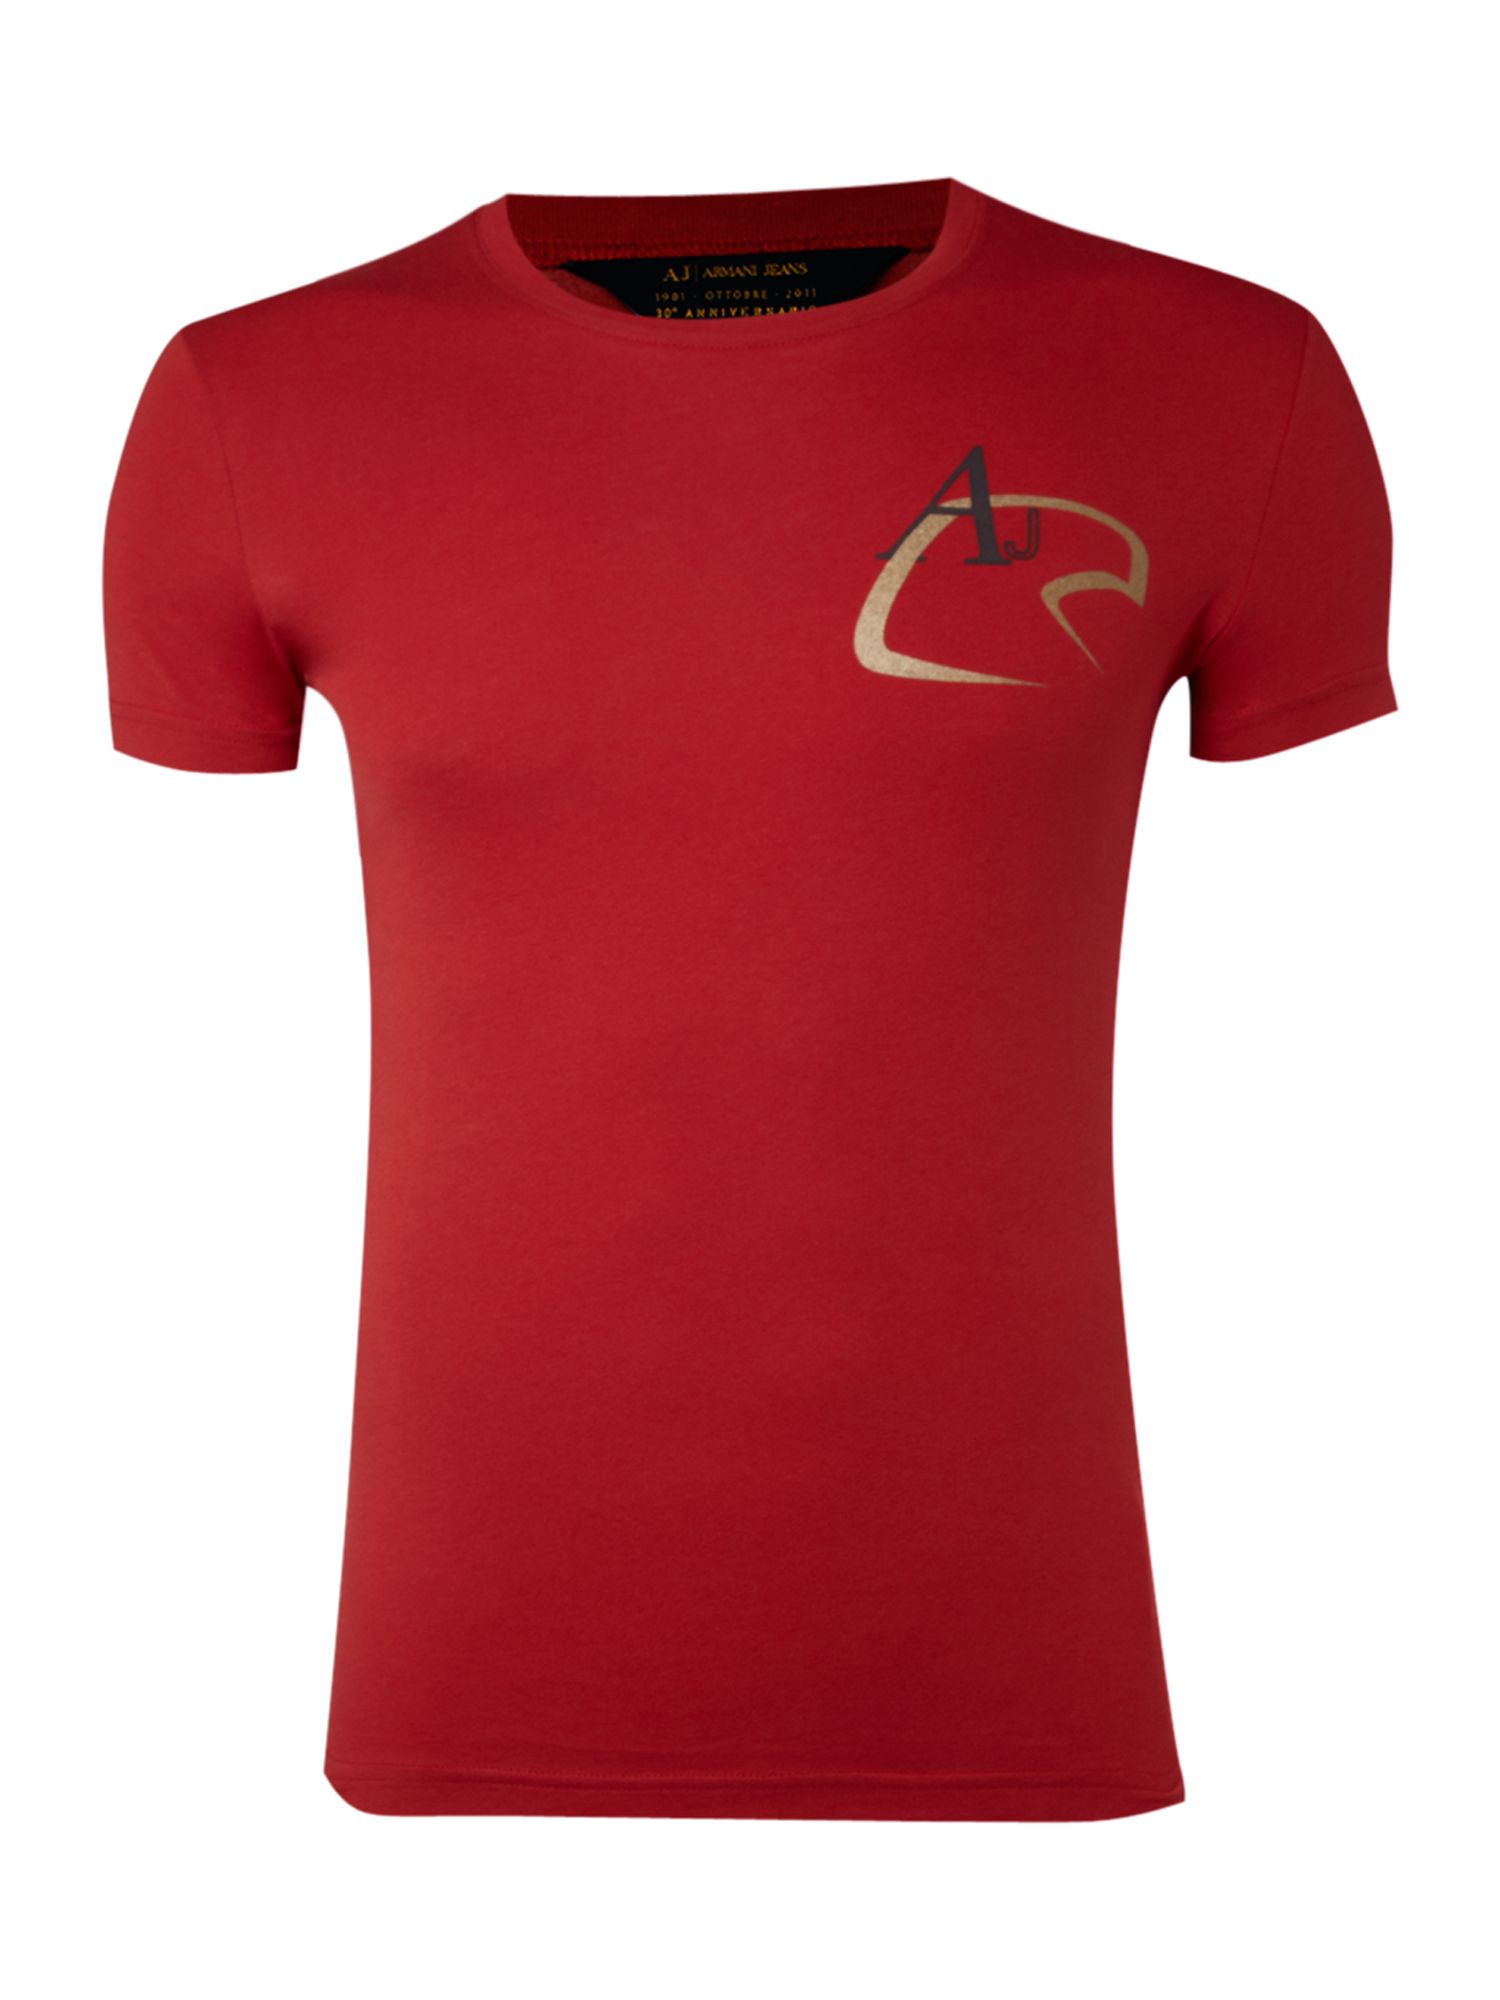 Armani Jeans Mens Armani Jeans Eagle logo T-shirt, Red product image